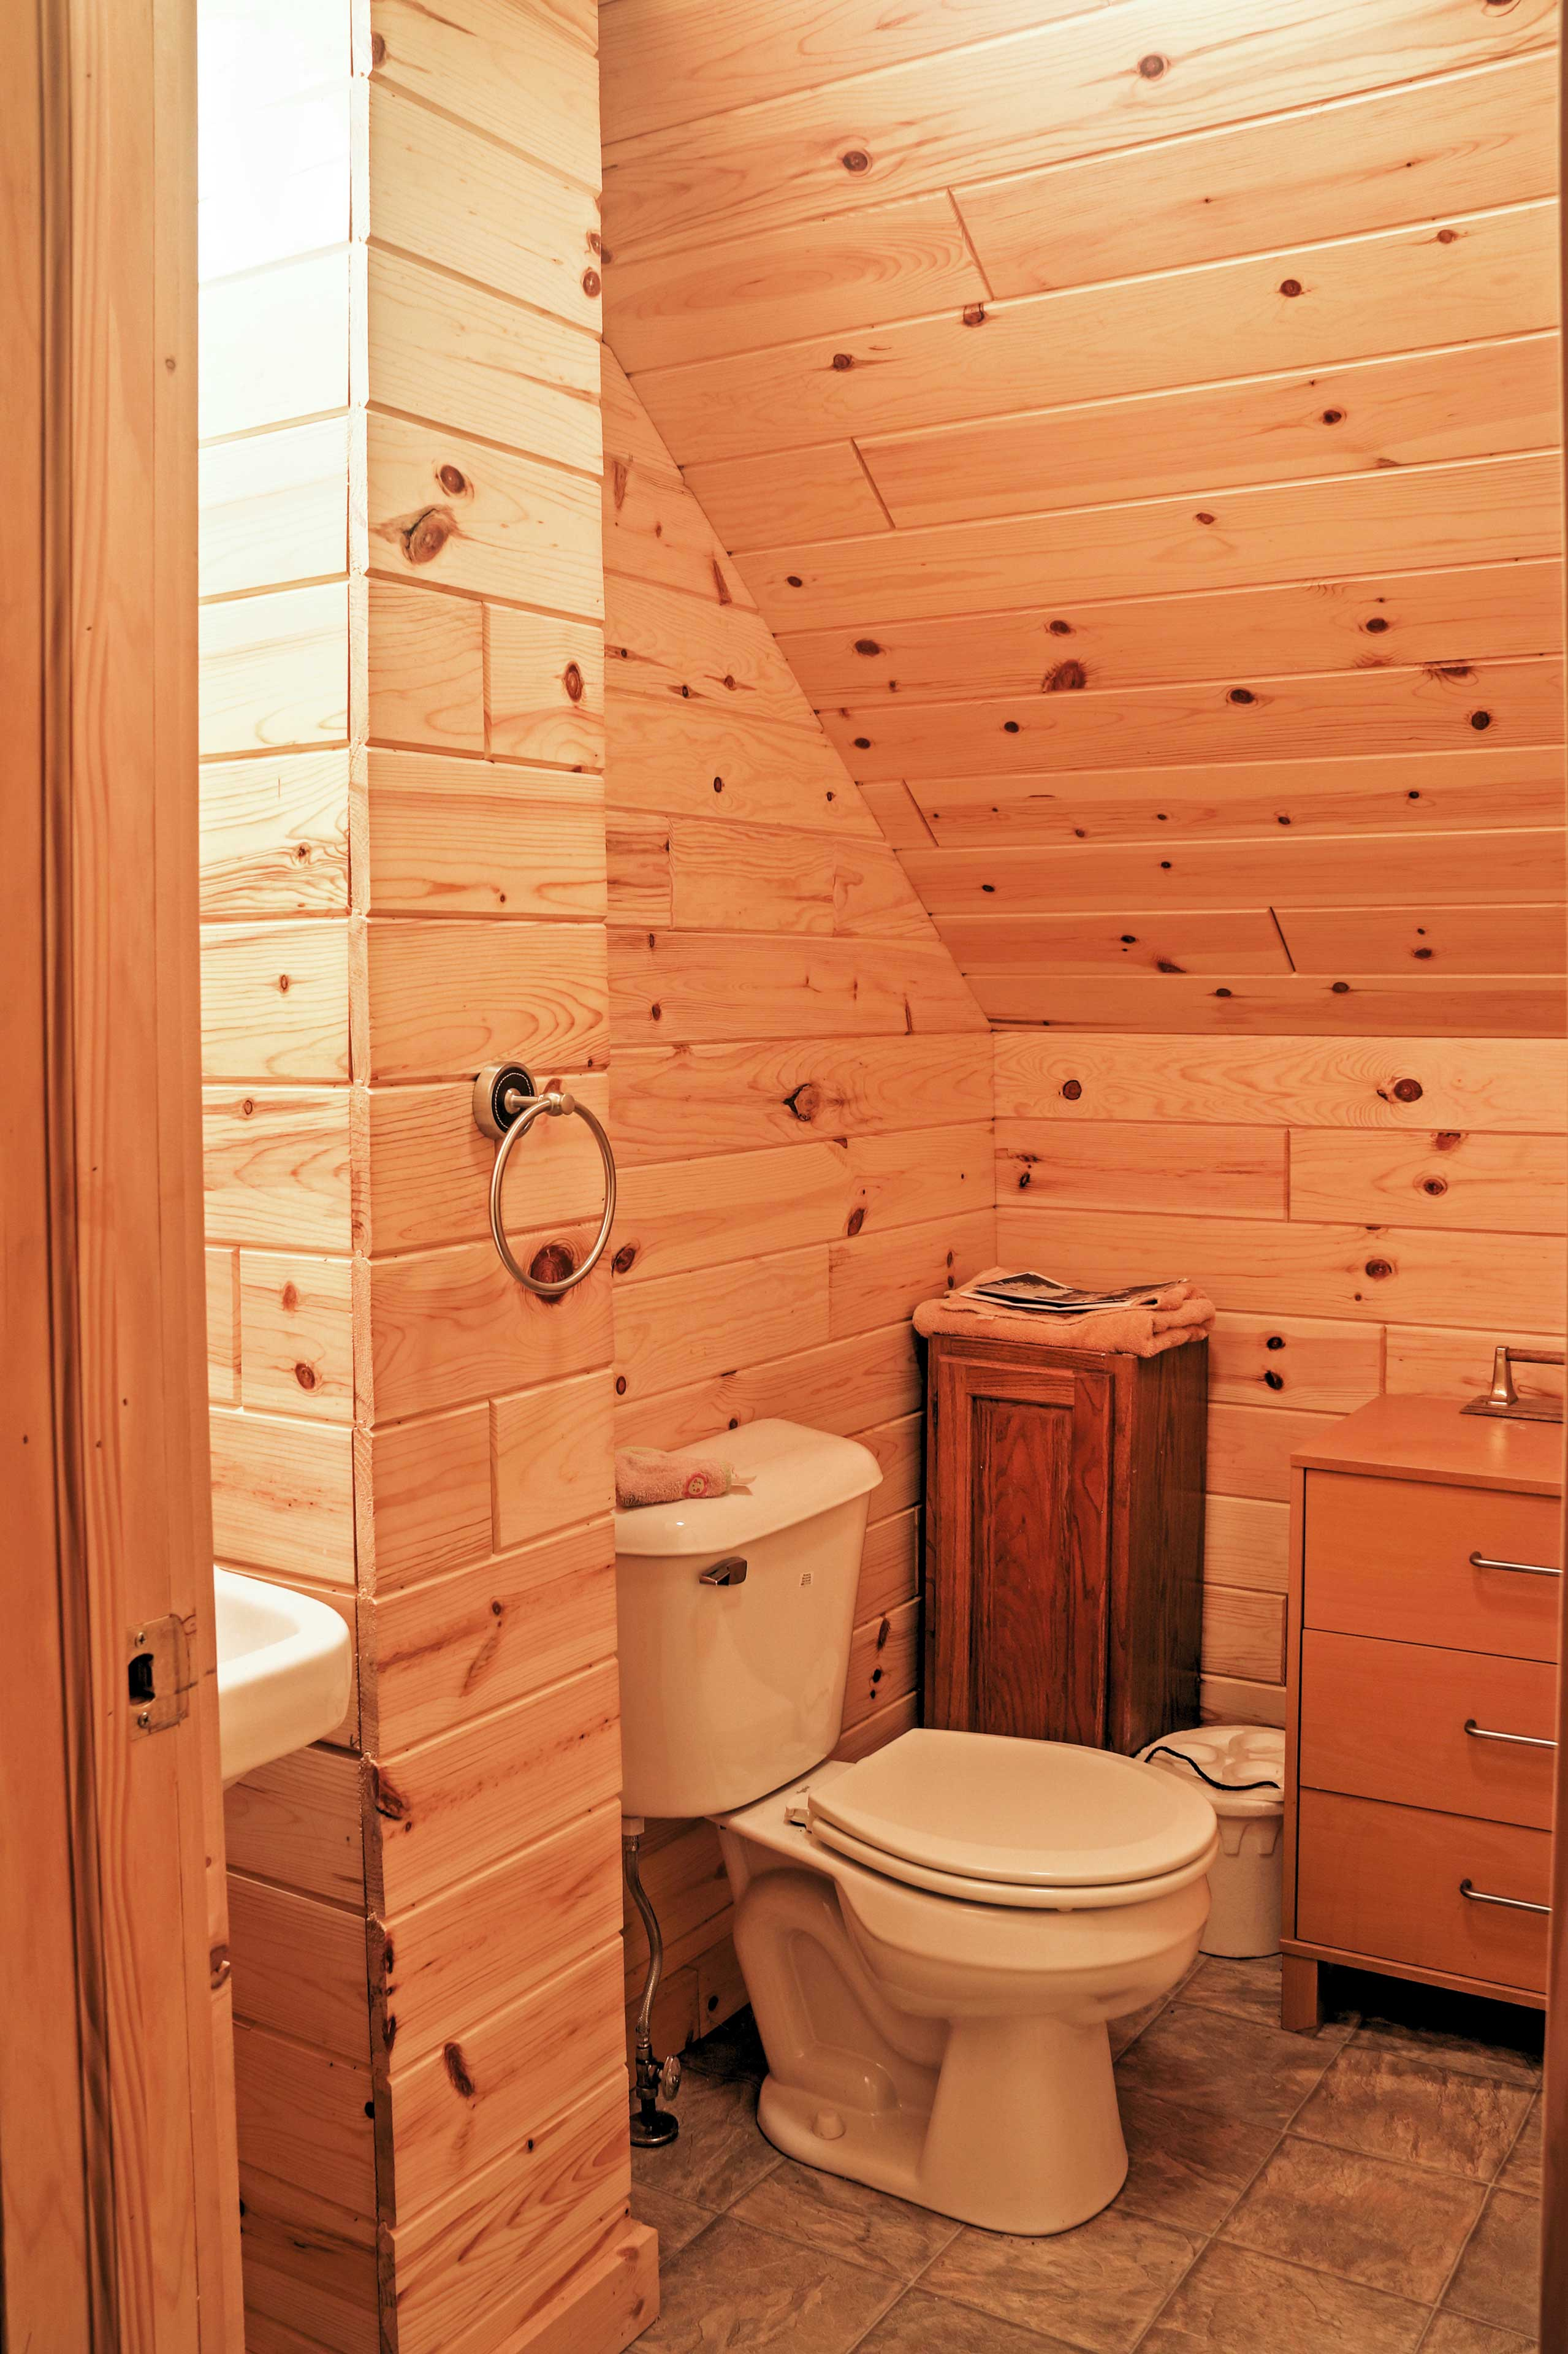 The 2 upstairs sleeping areas are separated by this quaint bathroom!